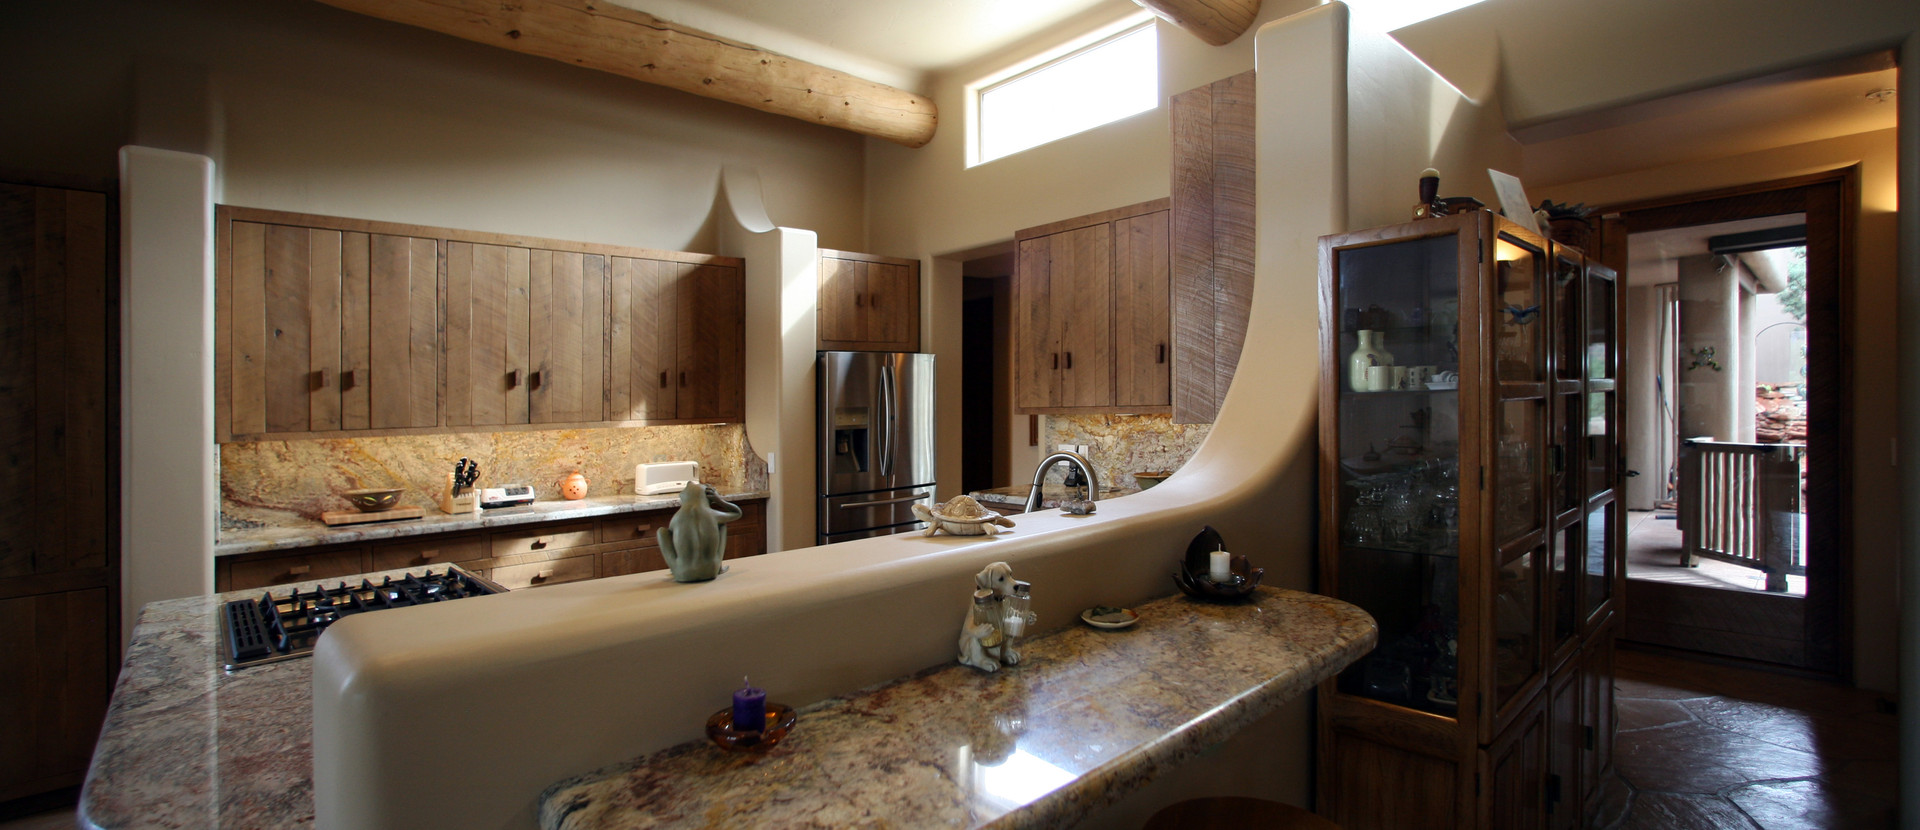 SOUTHWEST KITCHEN WITH SOFT LINES